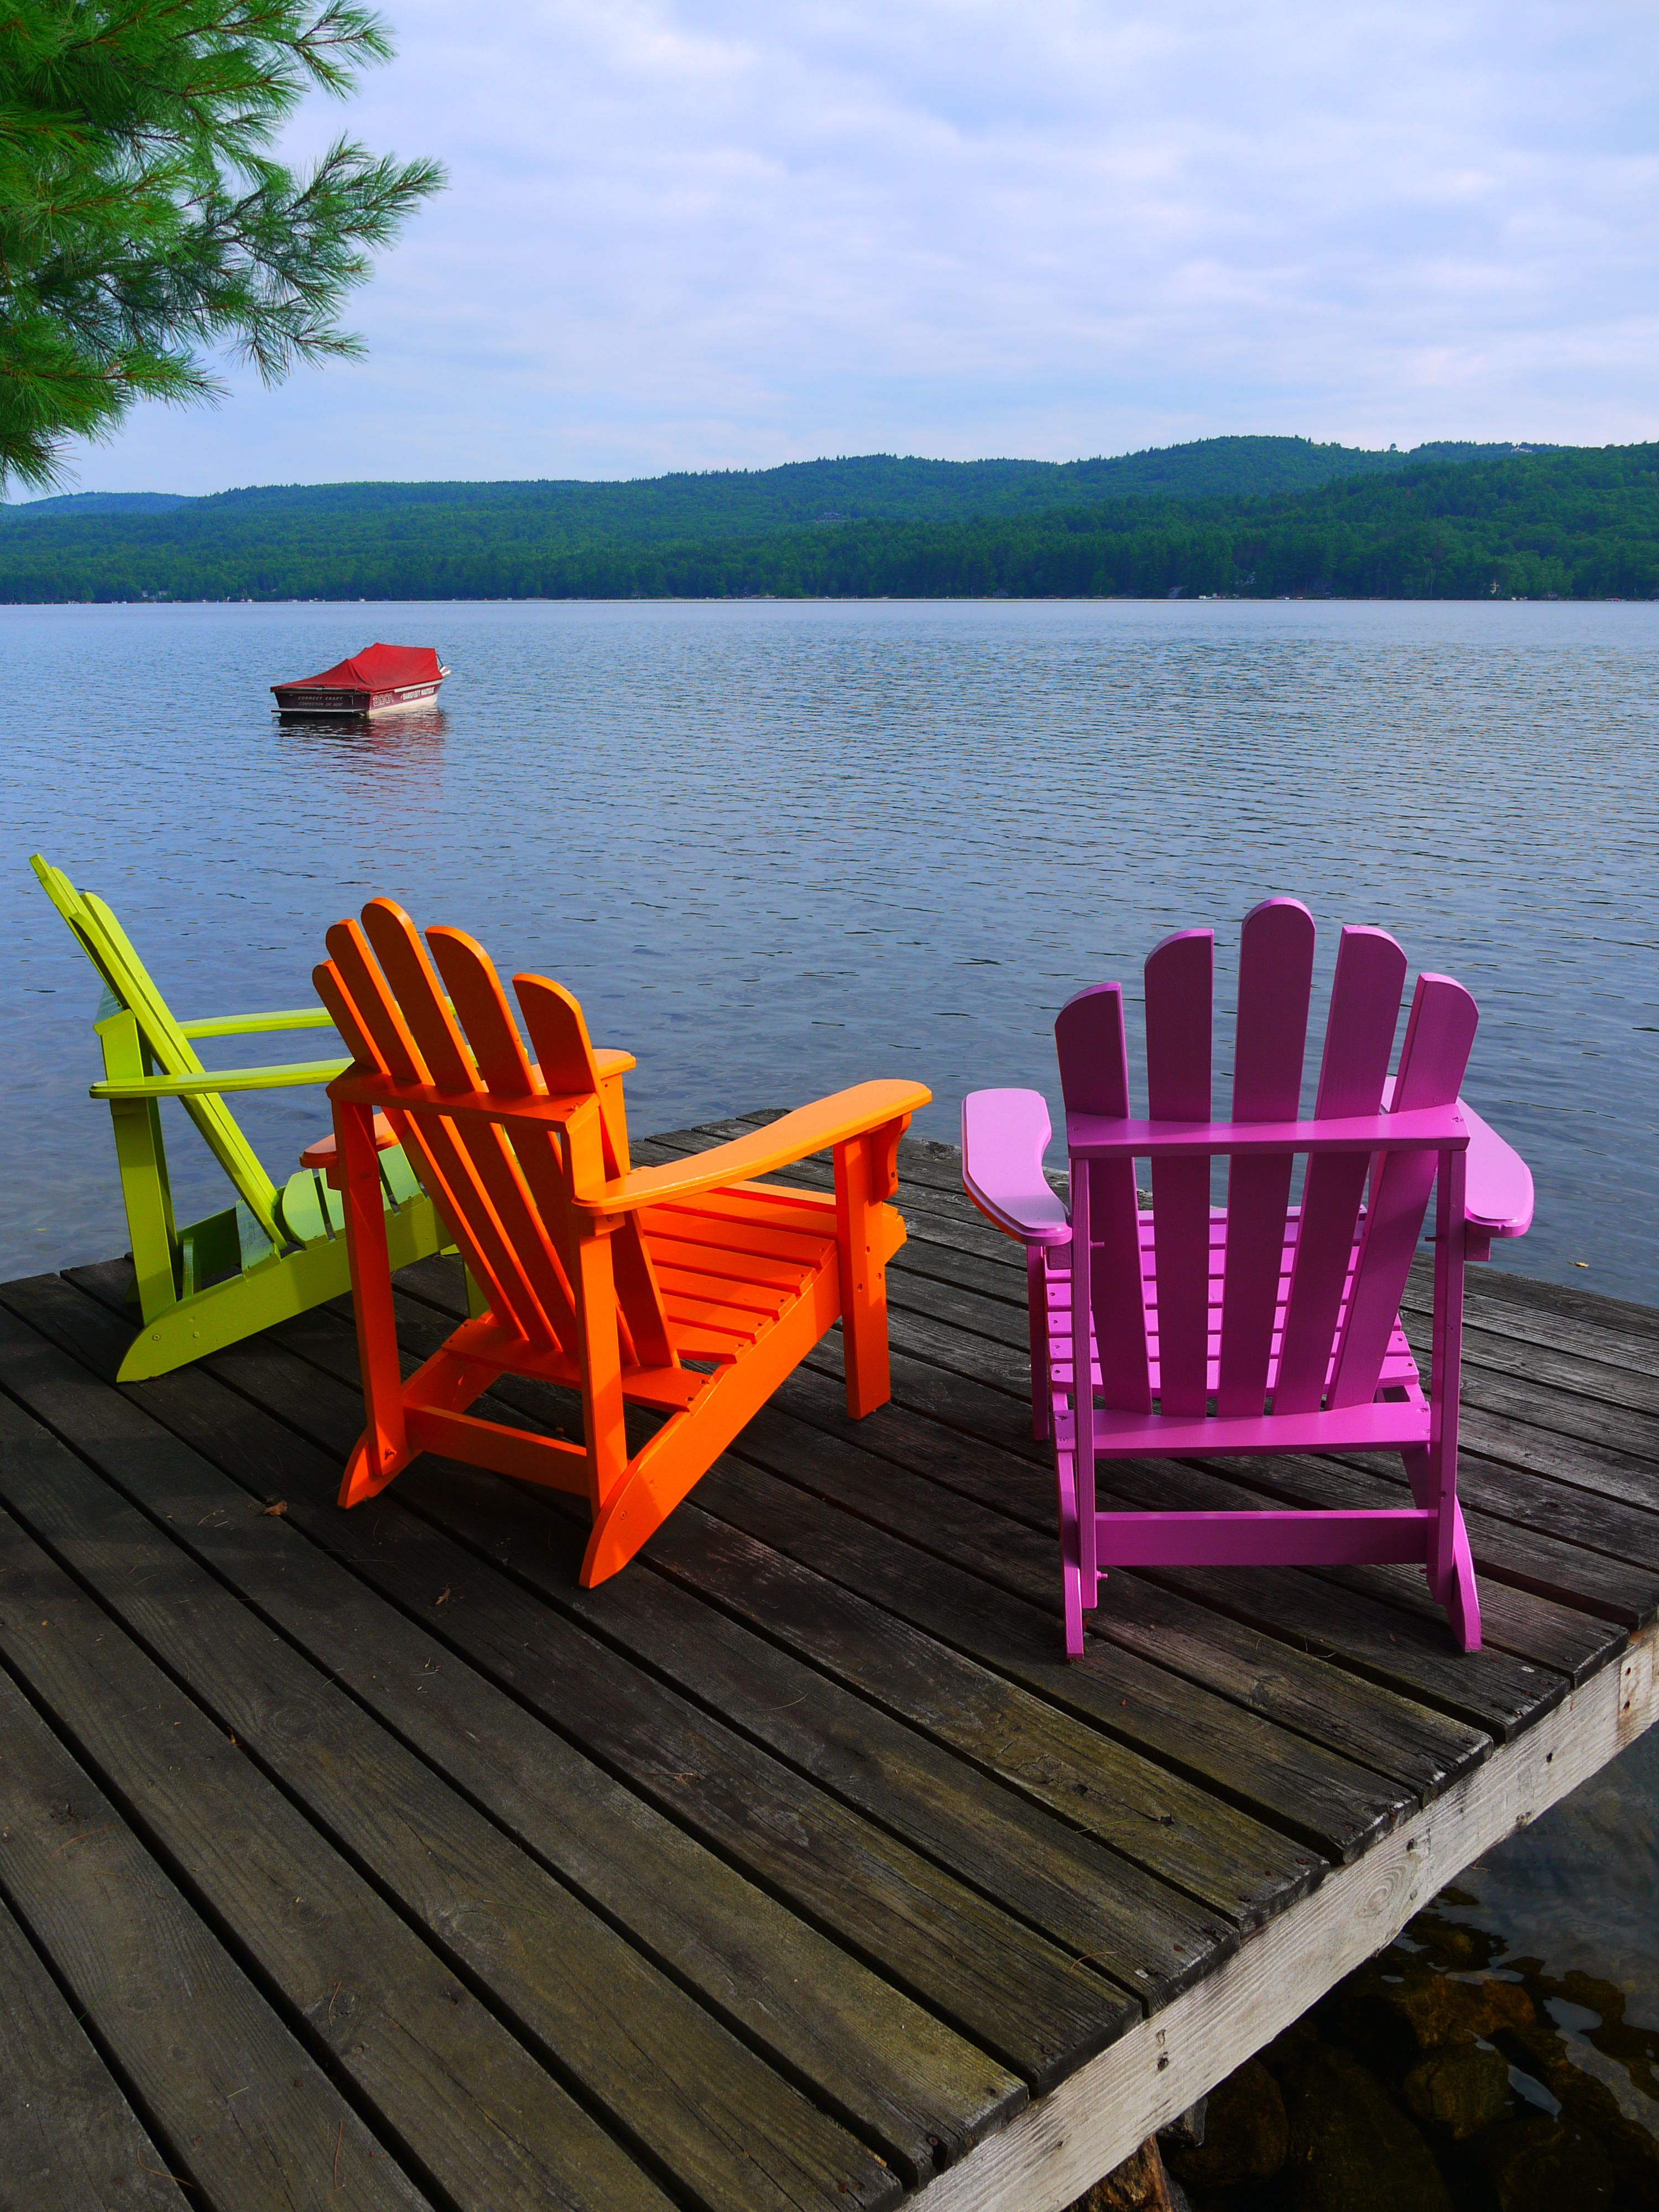 adirondack chairs. Don't you just love these colors of